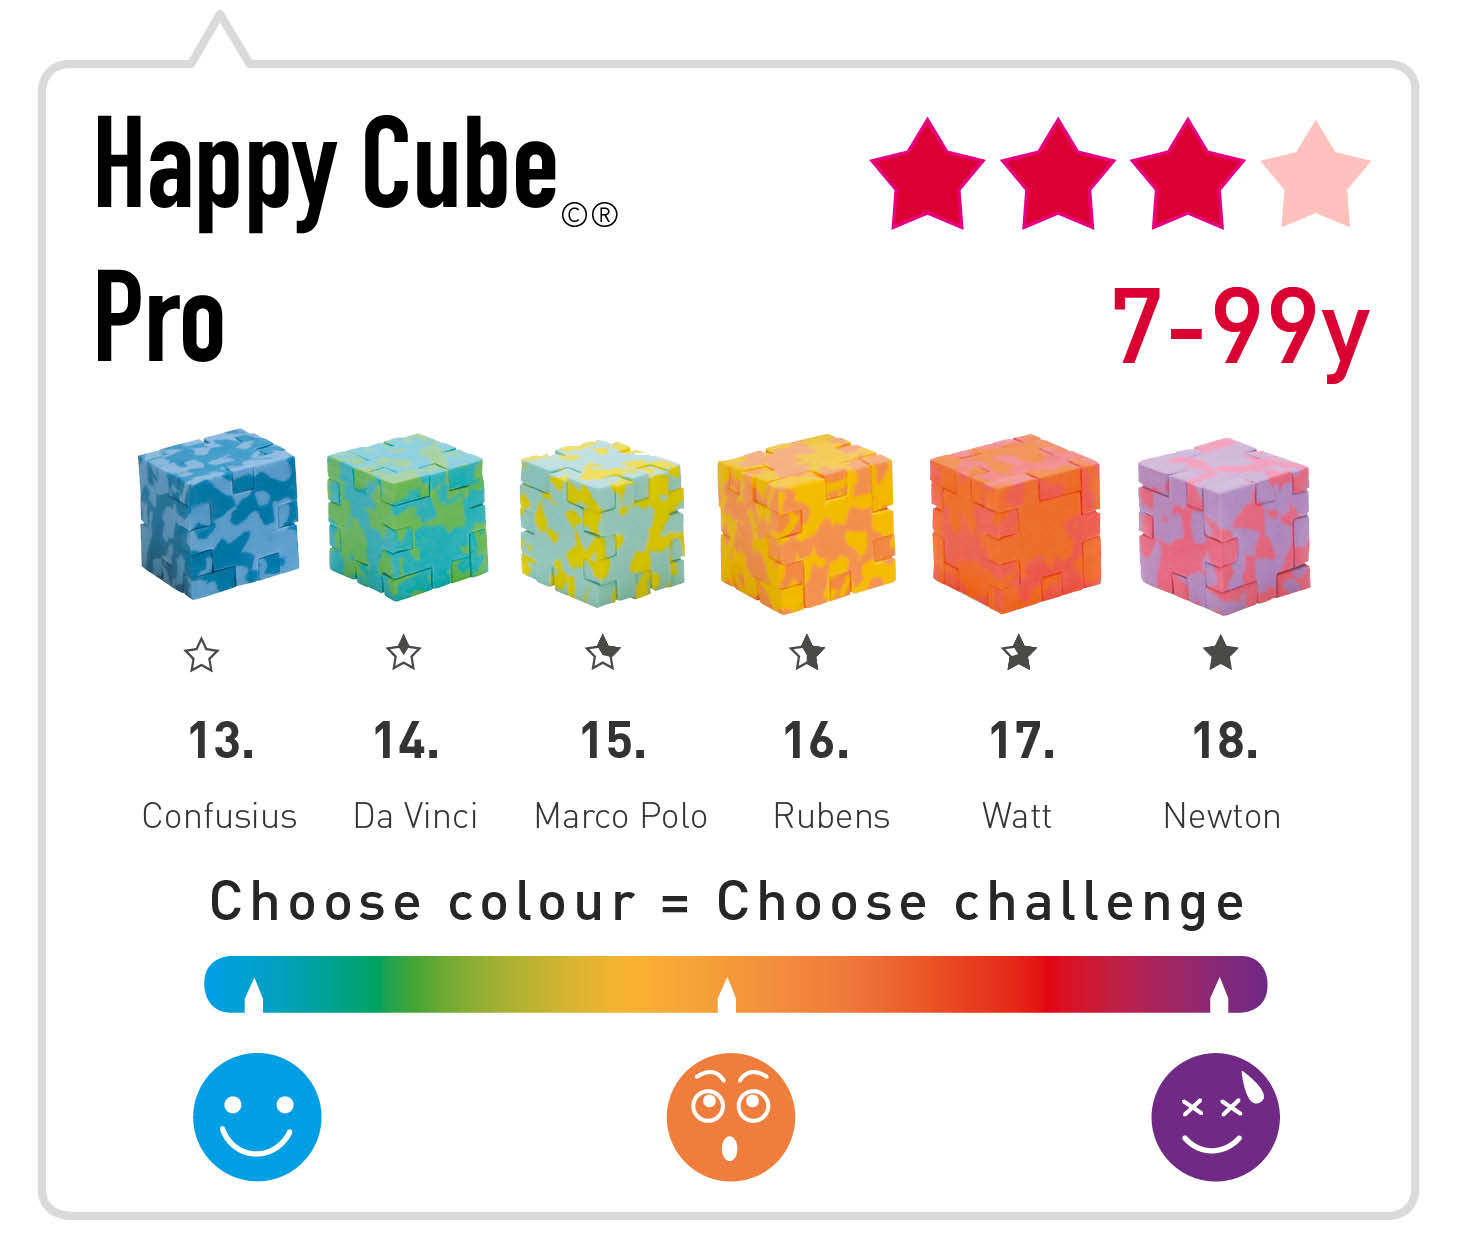 Happy Cube Pro product Info